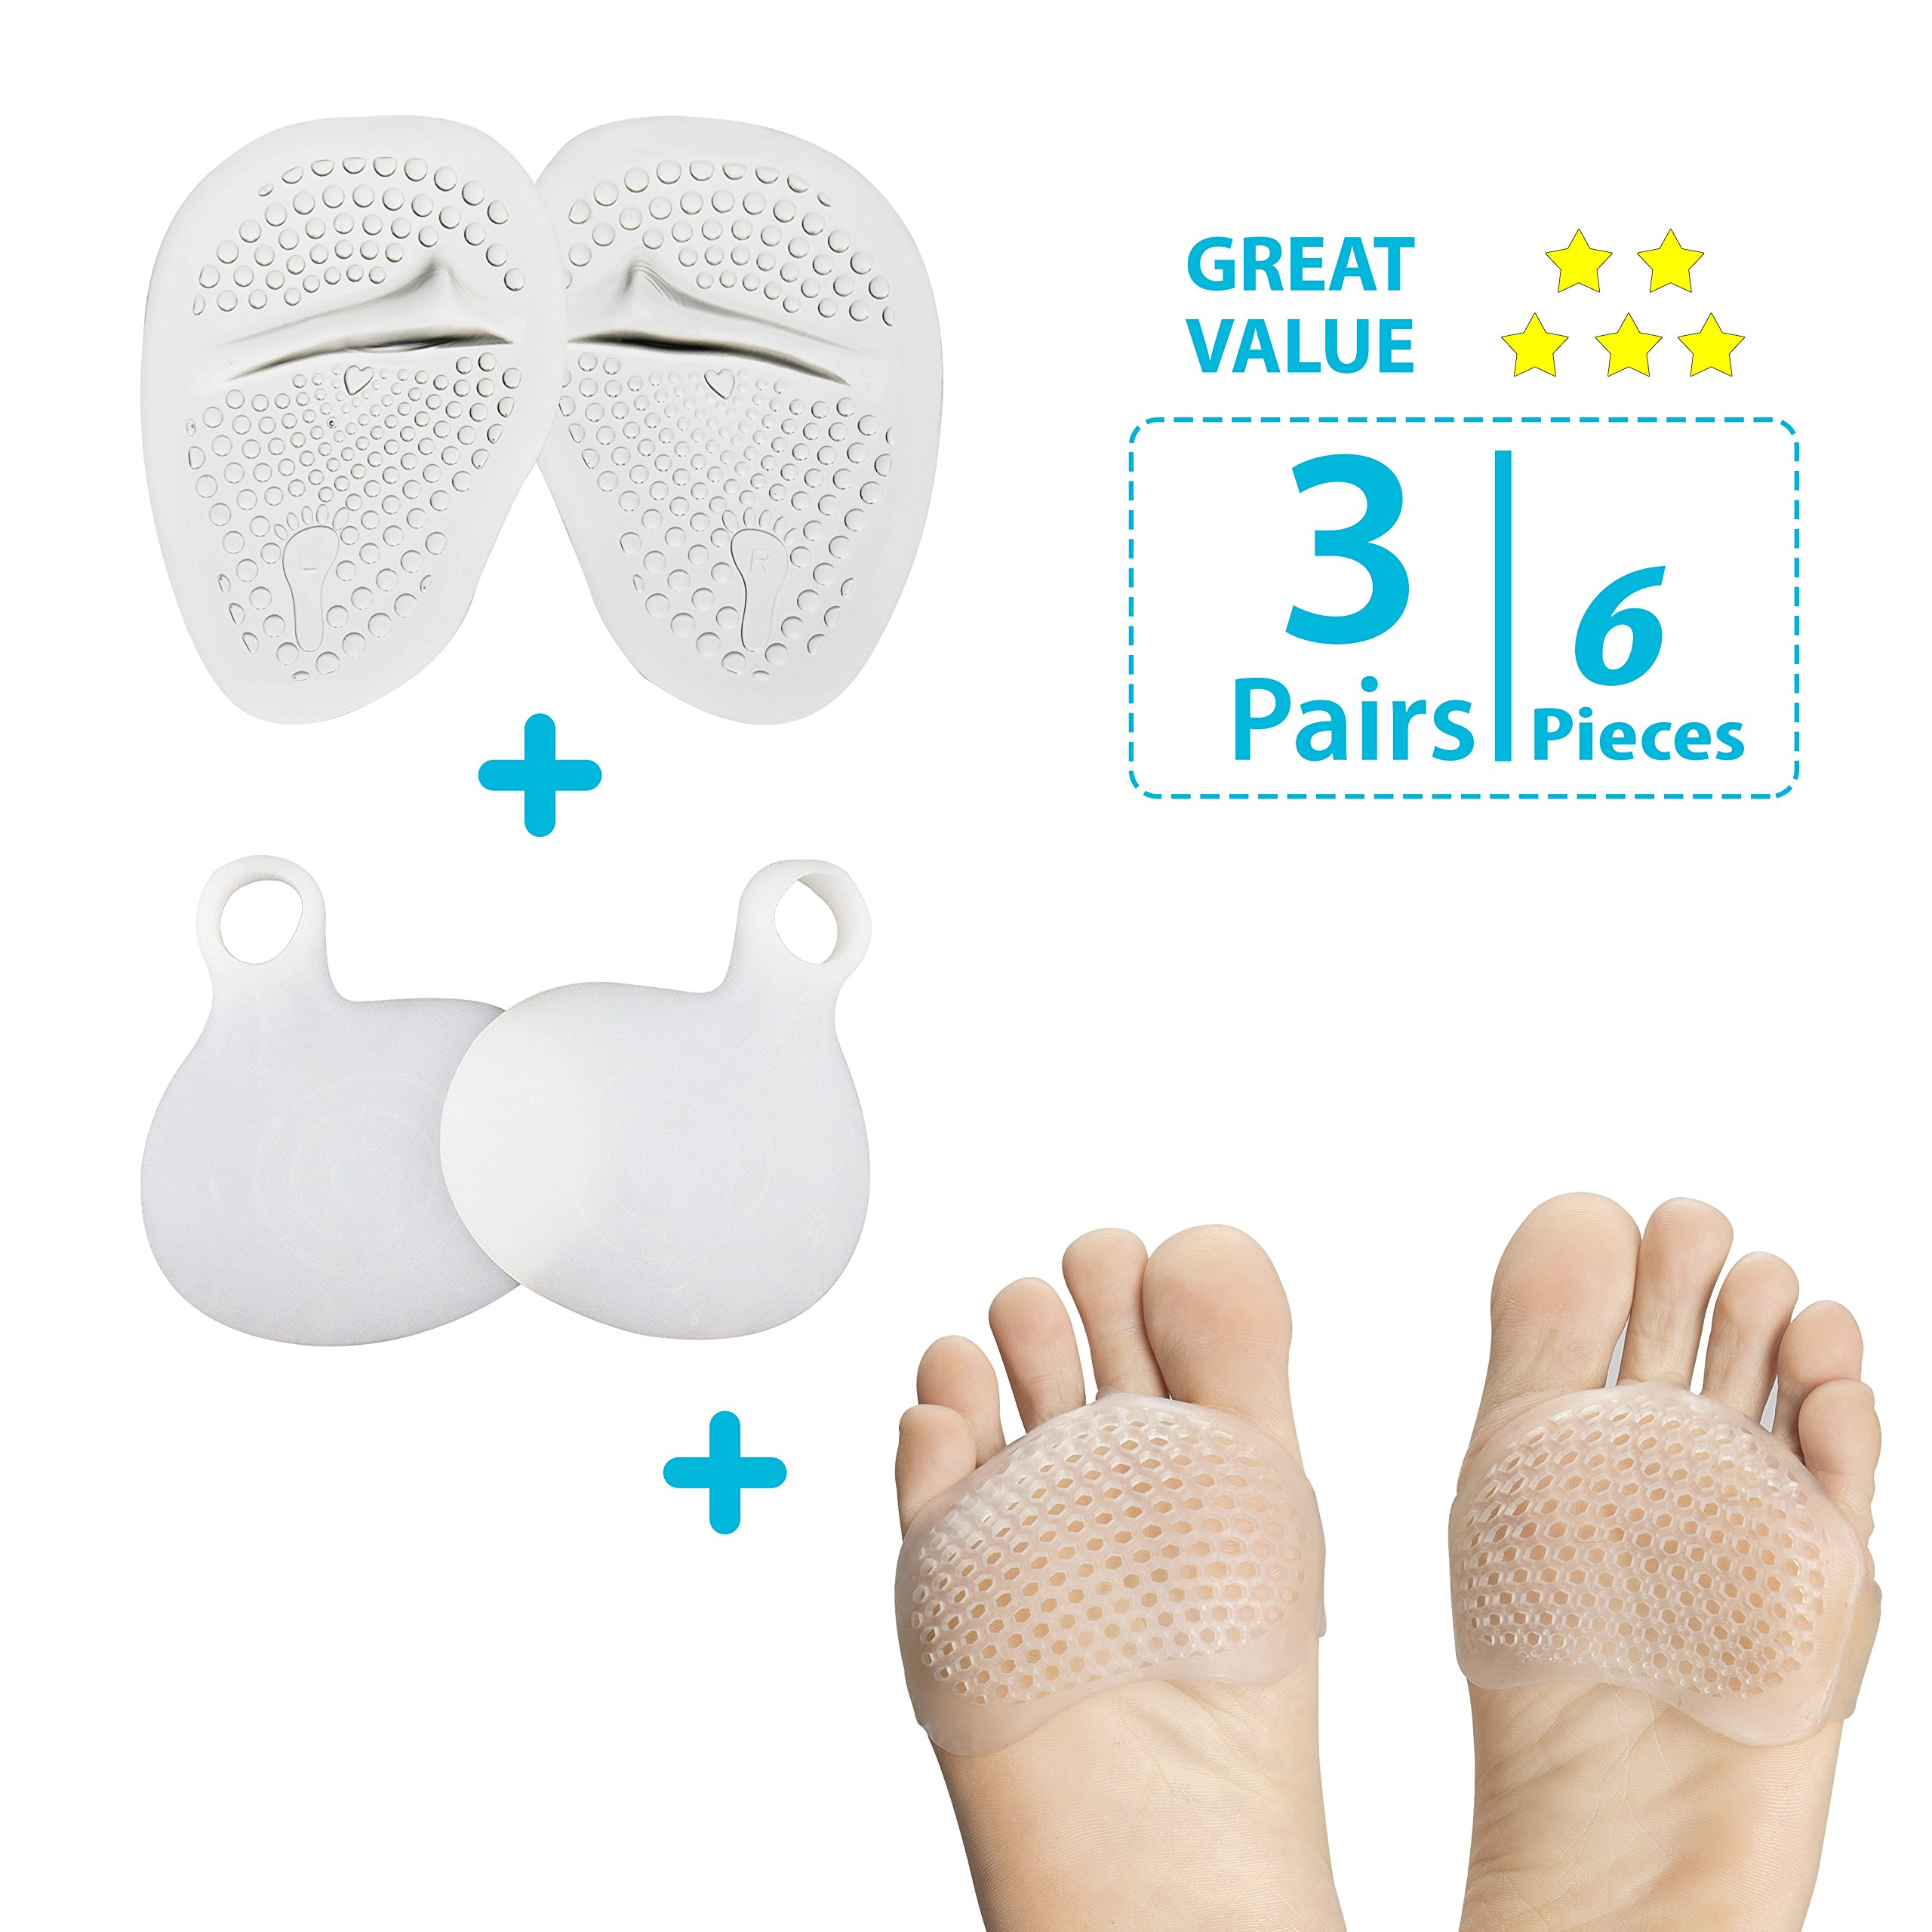 Foot Pads | 2 Pairs | Ultra Soft, Smooth, Incredibly Comfy Gel Foot Pads | Metatarsal & Morton's Neuroma | Small Food Pads For Athletes & The Everyday Working Person | Customer Care Promise Guarantee